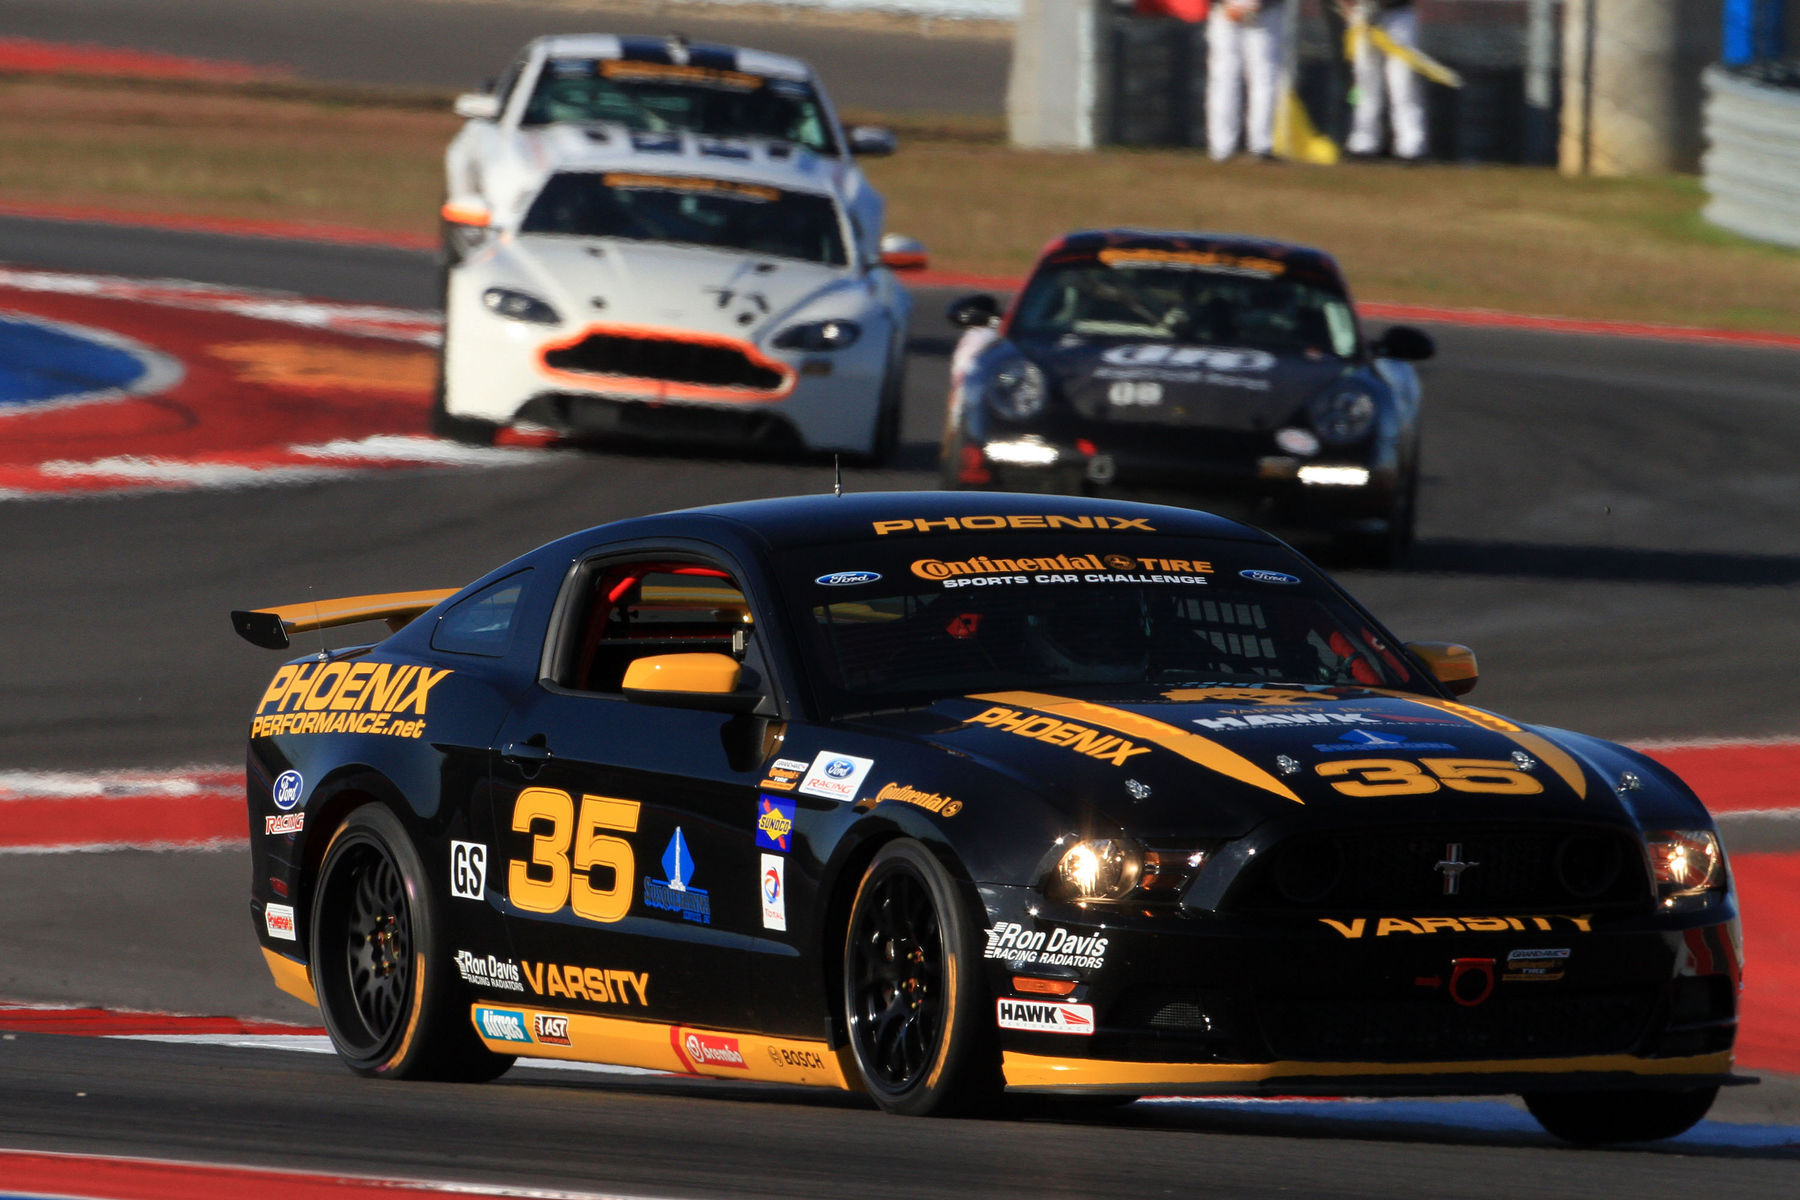 | Easing their way through the esses at COTA